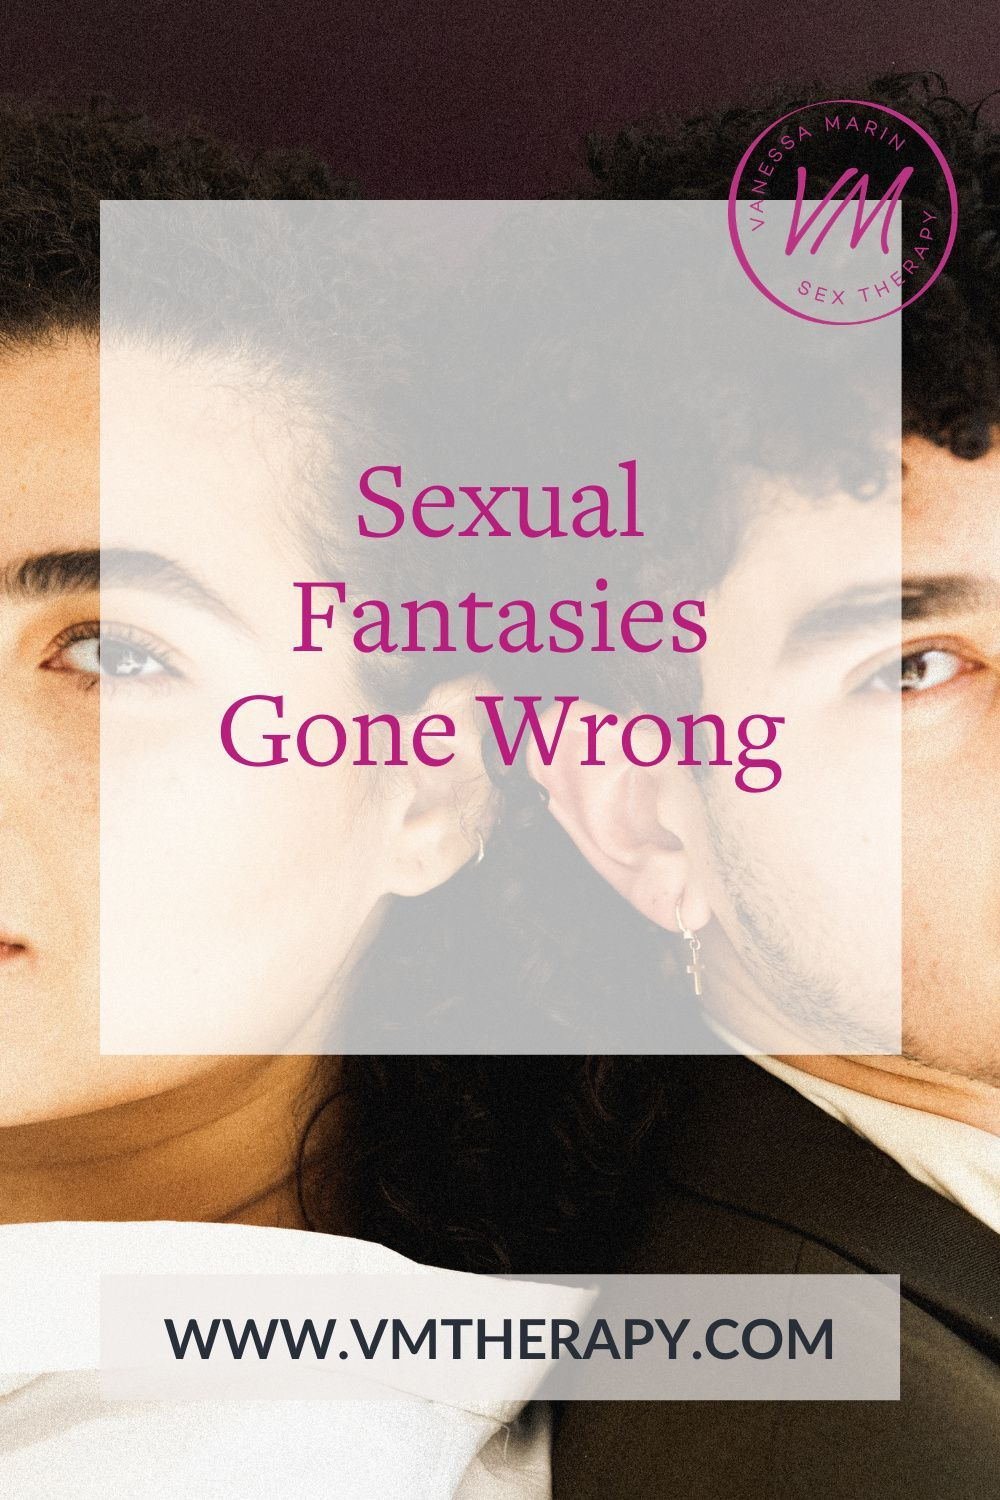 To sexual try fantasies Sexual Fantasy